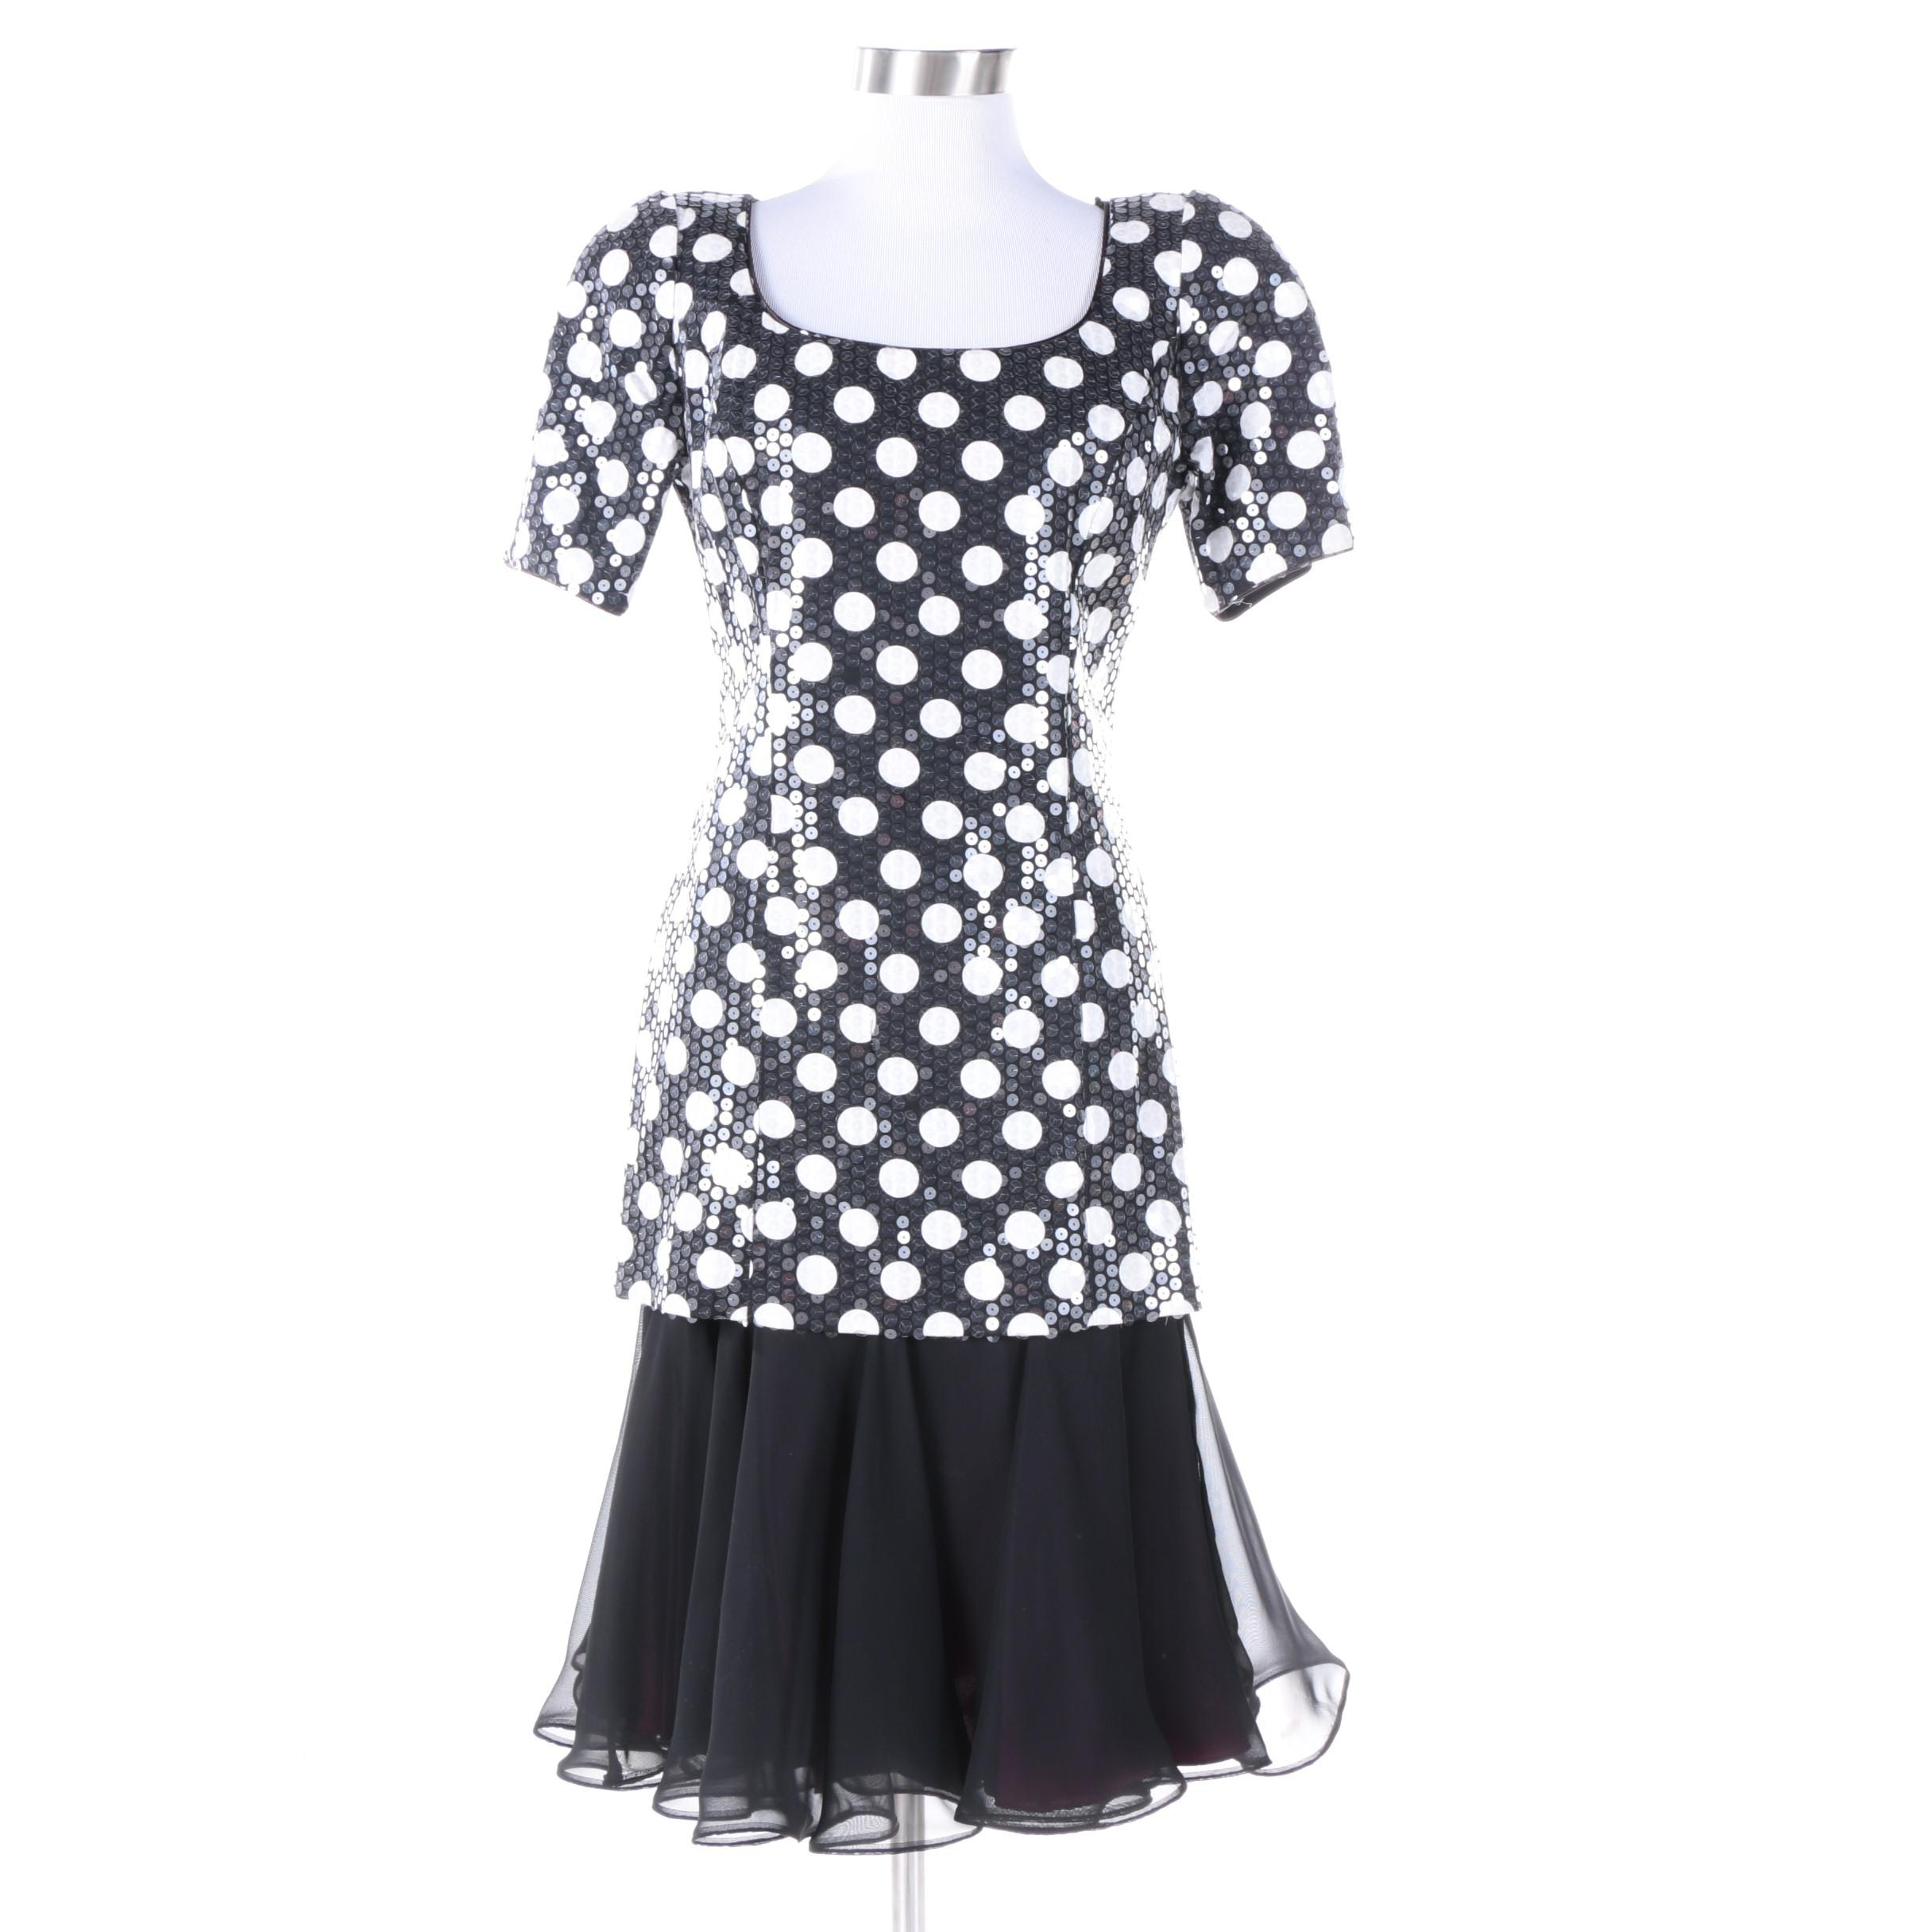 Vintage Lillie Rubin Sequined Polka Dot Dress with Chiffon Style Skirt